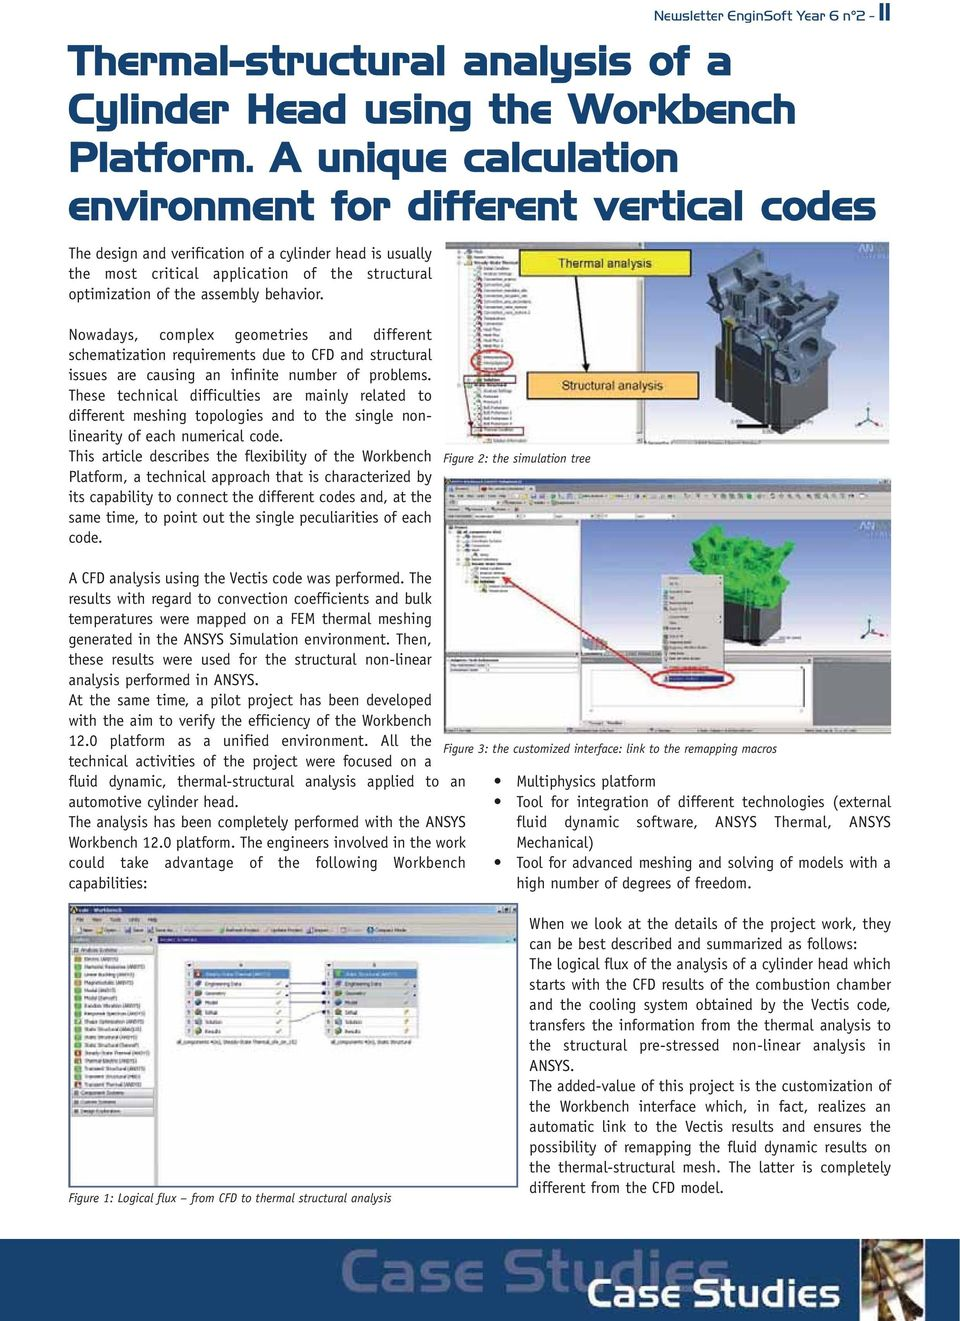 A unique calculation environment for different vertical codes Nowadays, complex geometries and different schematization requirements due to CFD and structural issues are causing an infinite number of